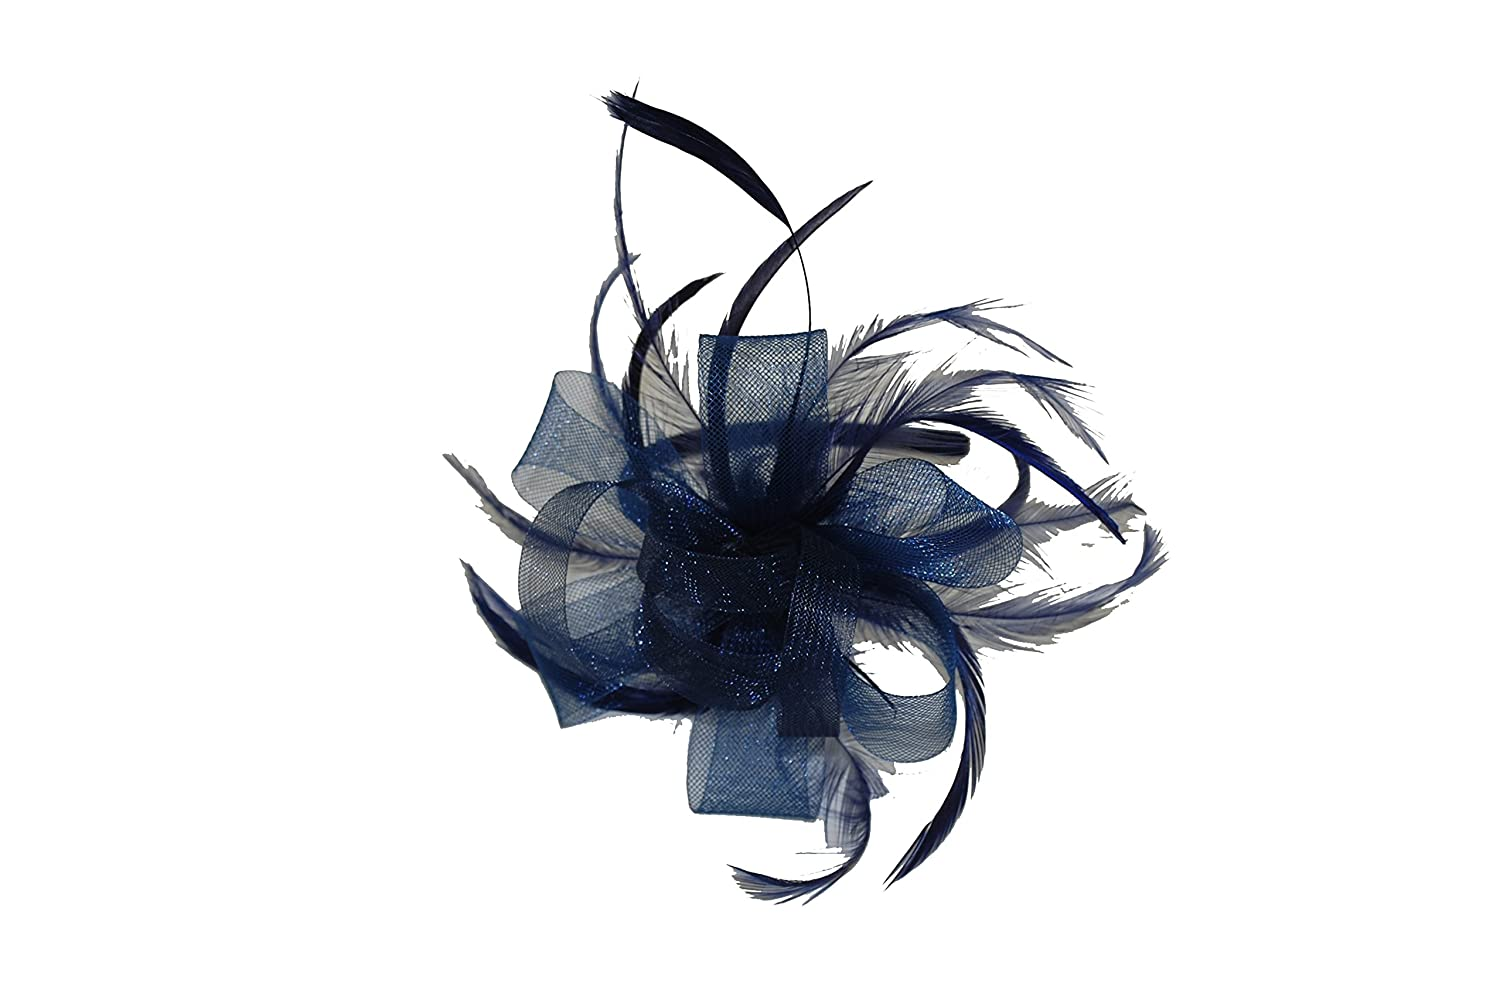 37ad60393d8c6 GIZZY® Ladies Navy Blue Crin Net Loops Fascinator with Feathers Set on  Headband: Amazon.co.uk: Clothing